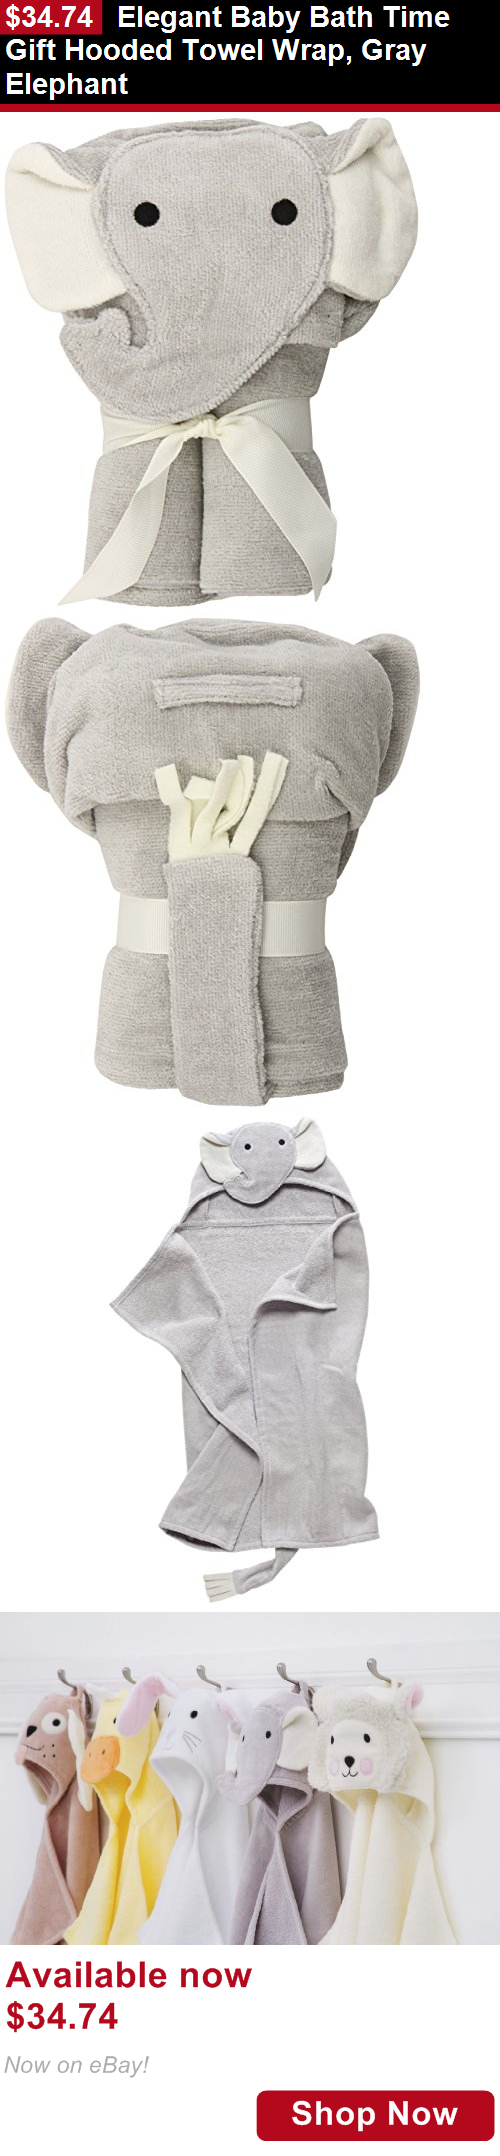 Baby Towels And Washcloths Elegant Baby Bath Time Gift Hooded Towel